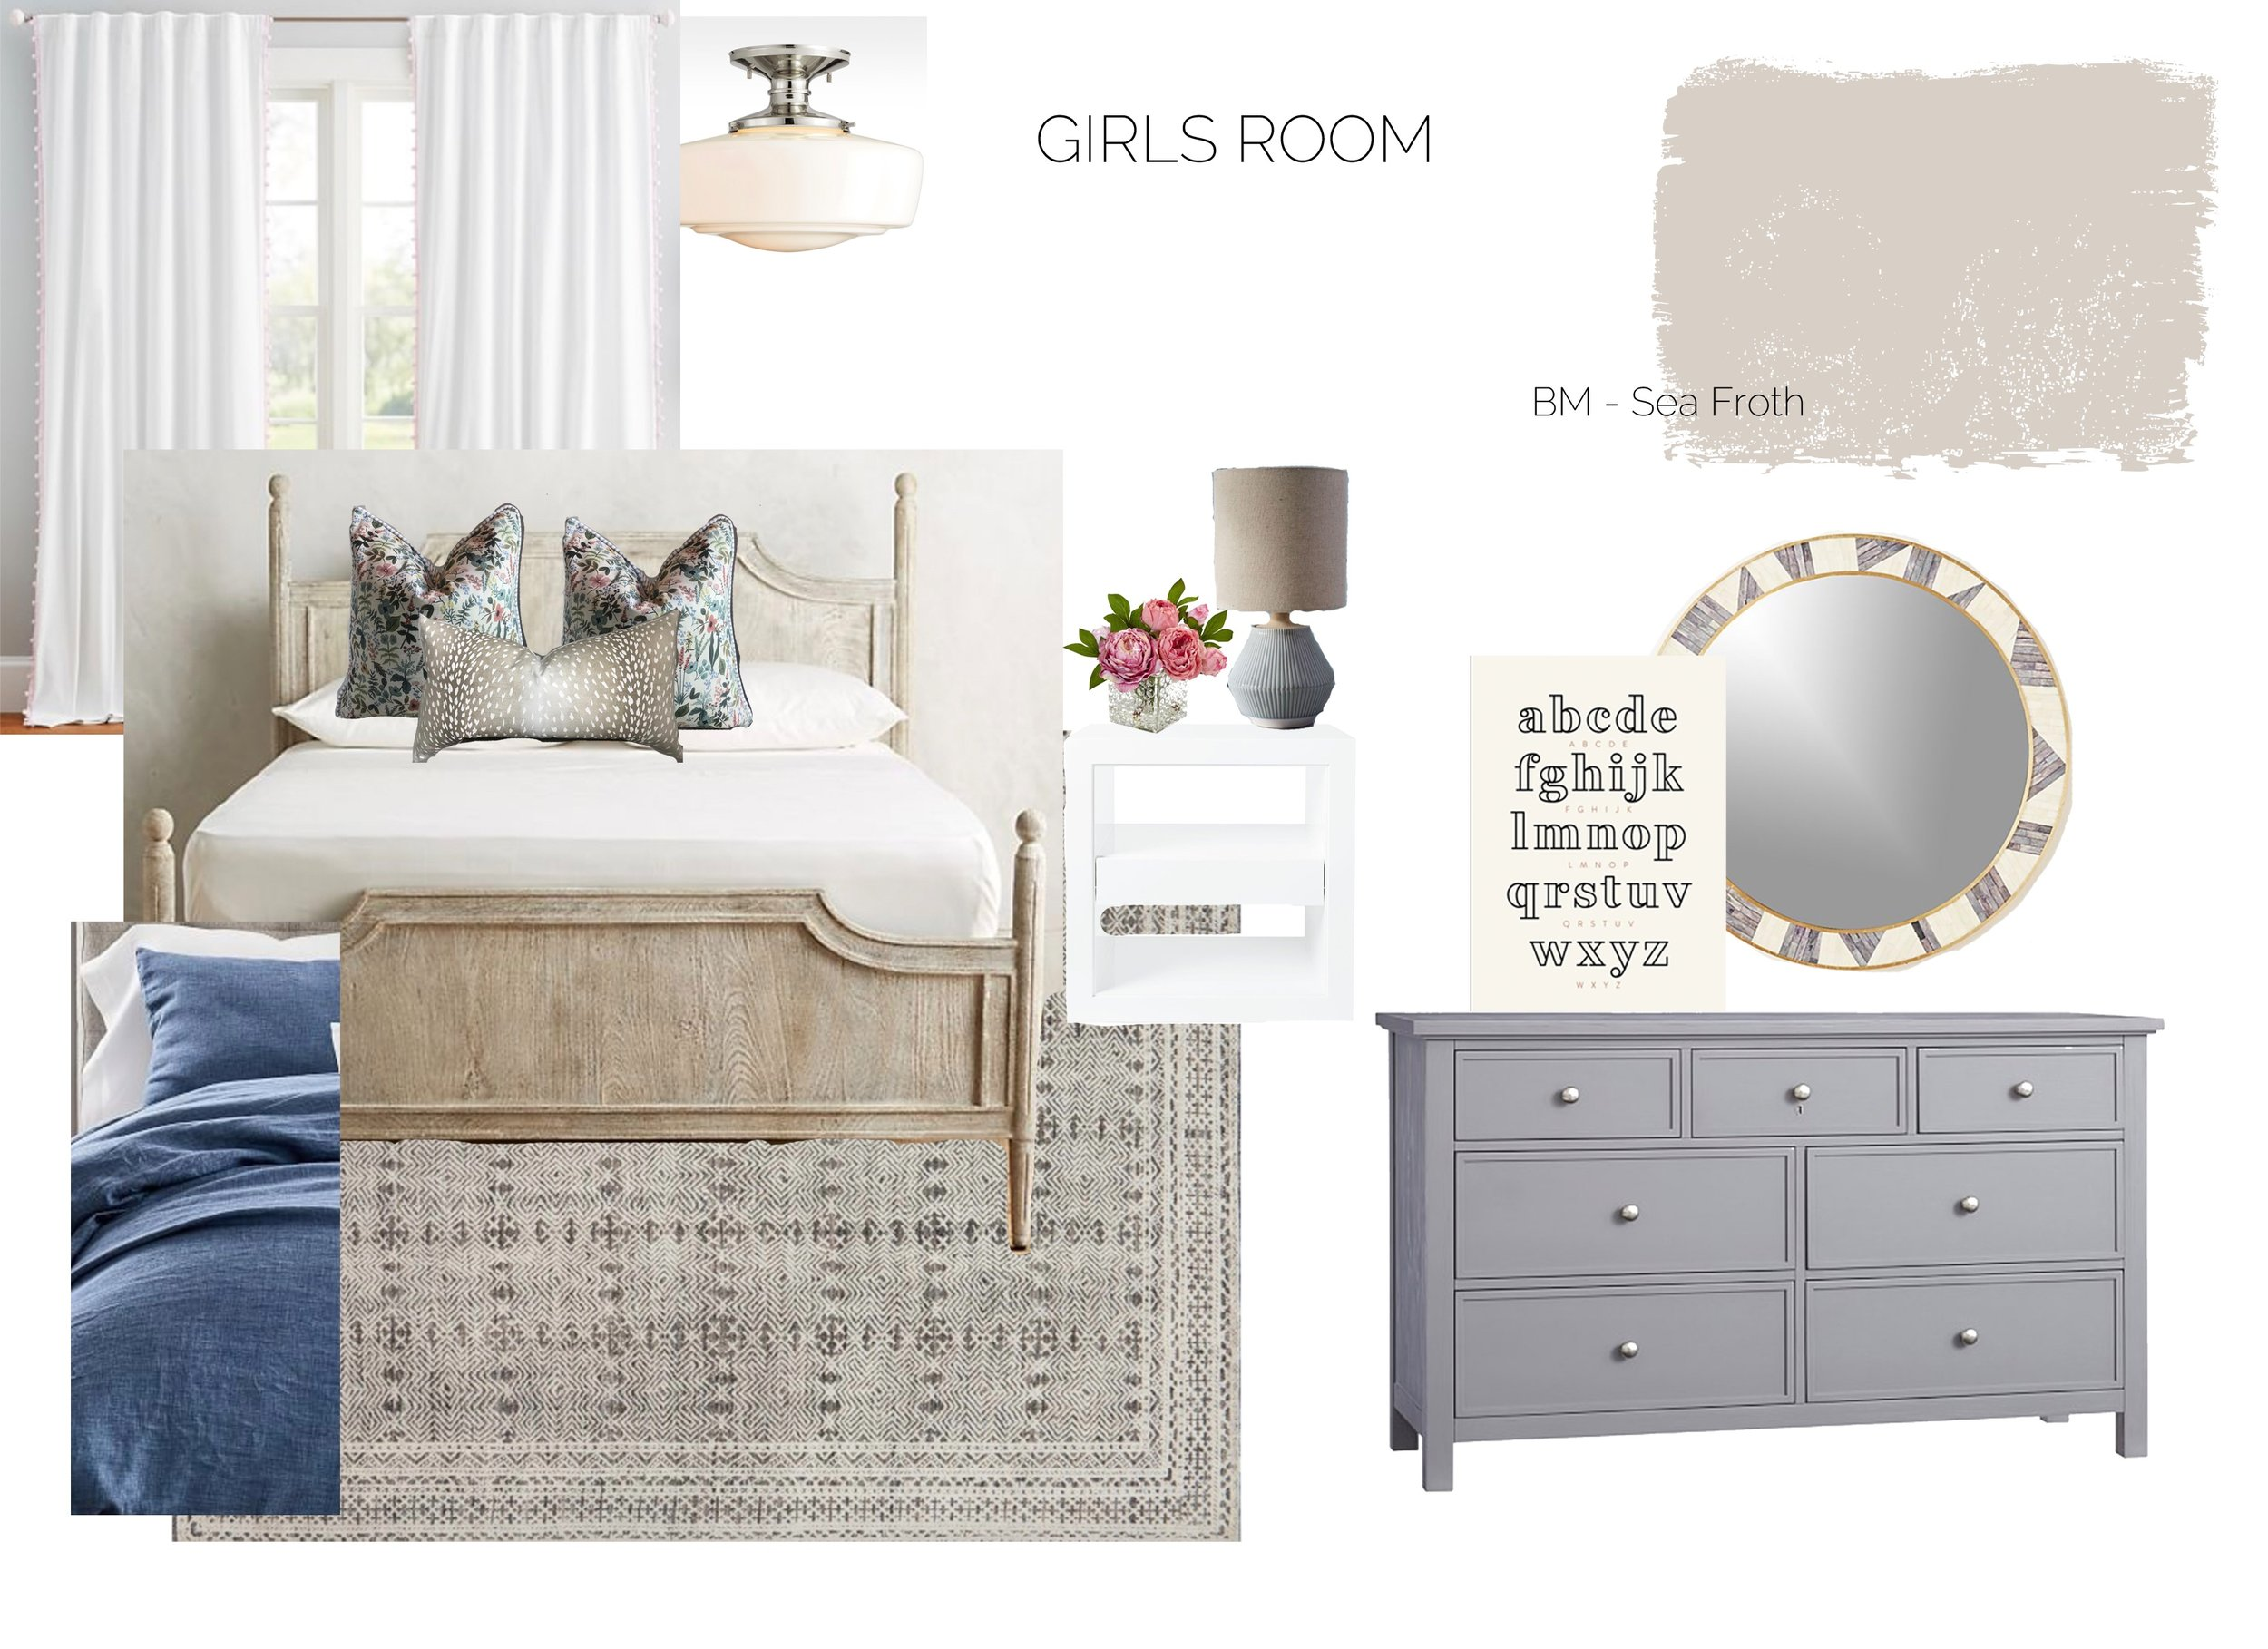 Girls soft and feminine bedroom